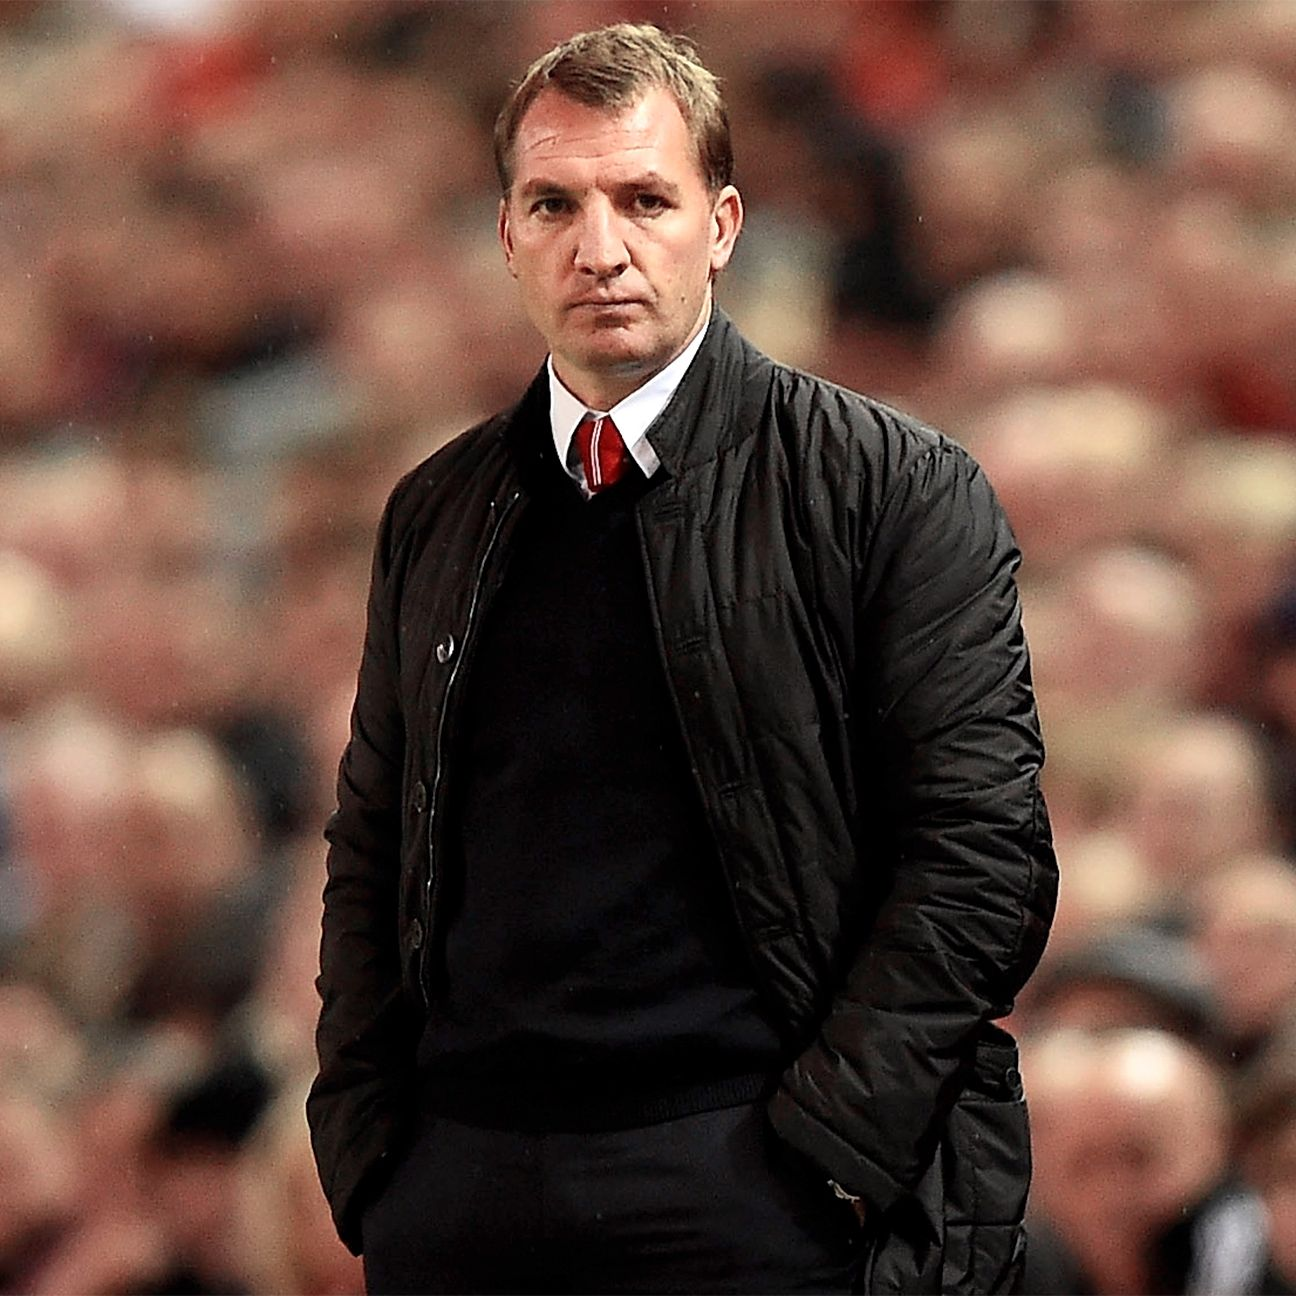 In 2015-16 Liverpool will most likely feature in the Europa League for the third time in Brendan Rodgers' Liverpool tenure.